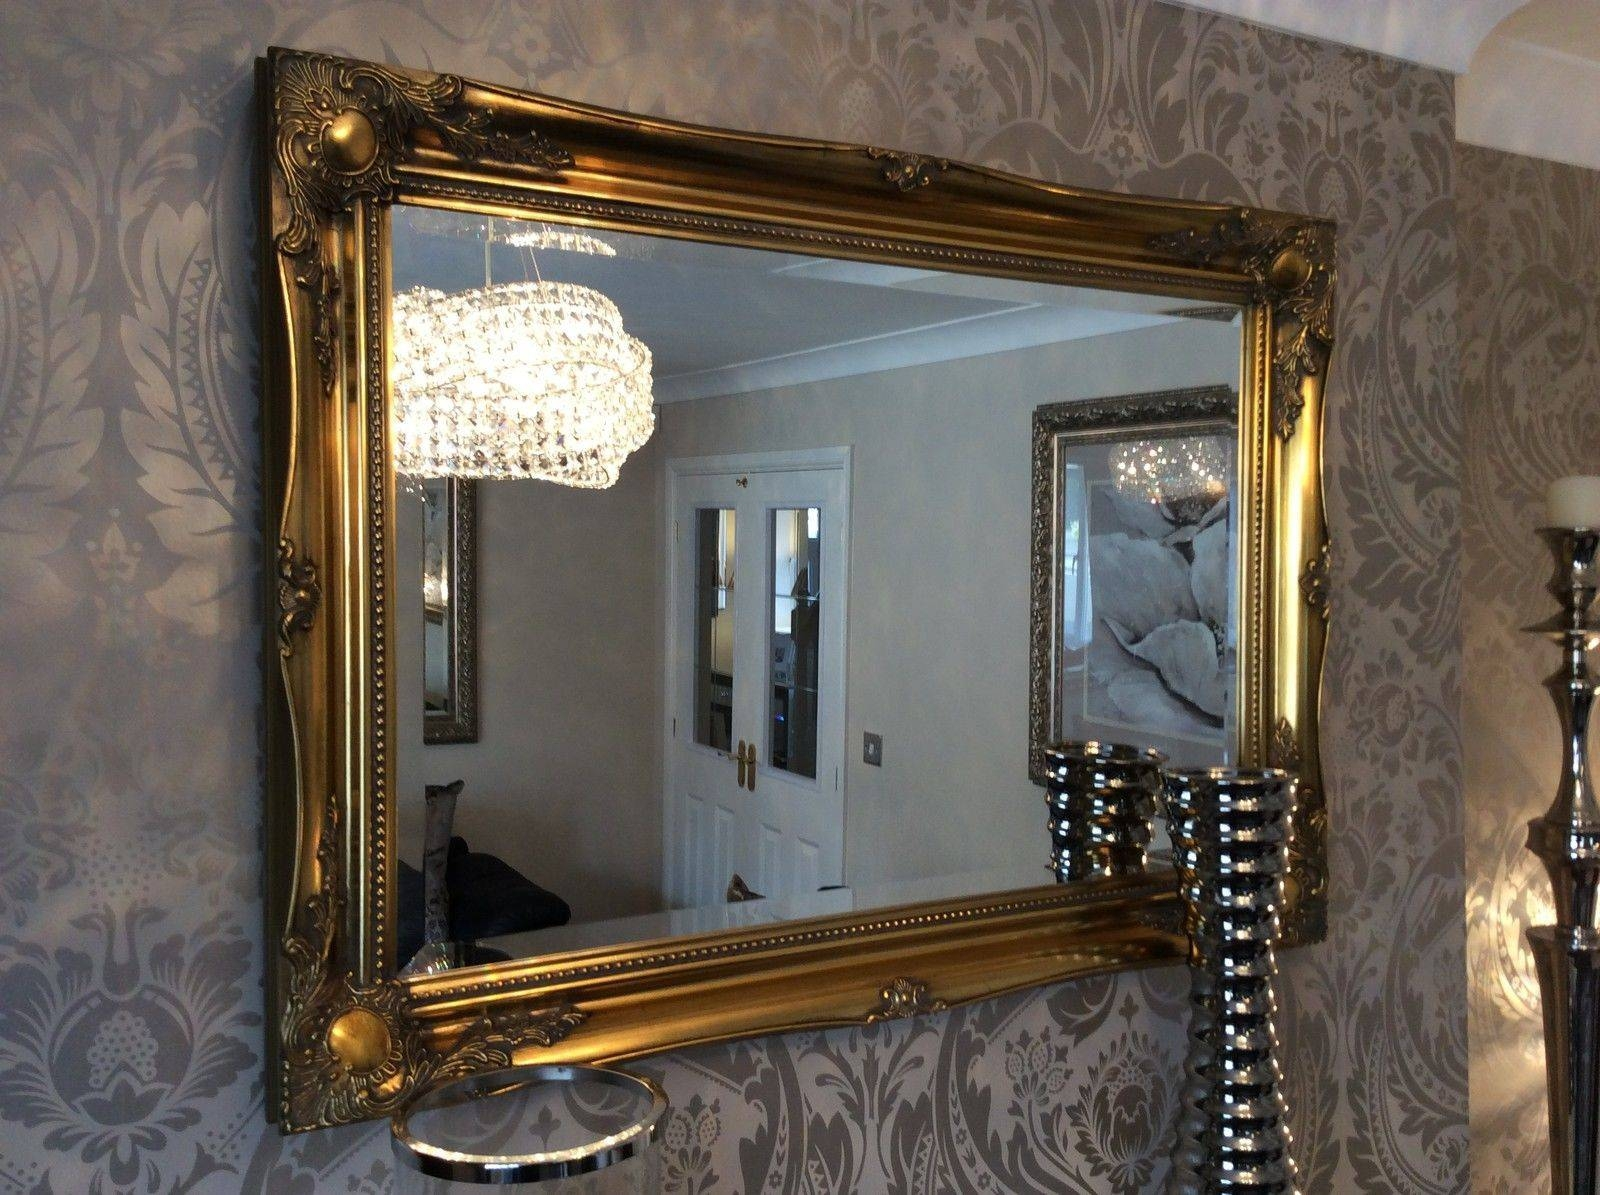 Large Antique Gold Shabby Chic Ornate Decorative Over Mantle Gilt Regarding Gold Shabby Chic Mirrors (View 2 of 15)